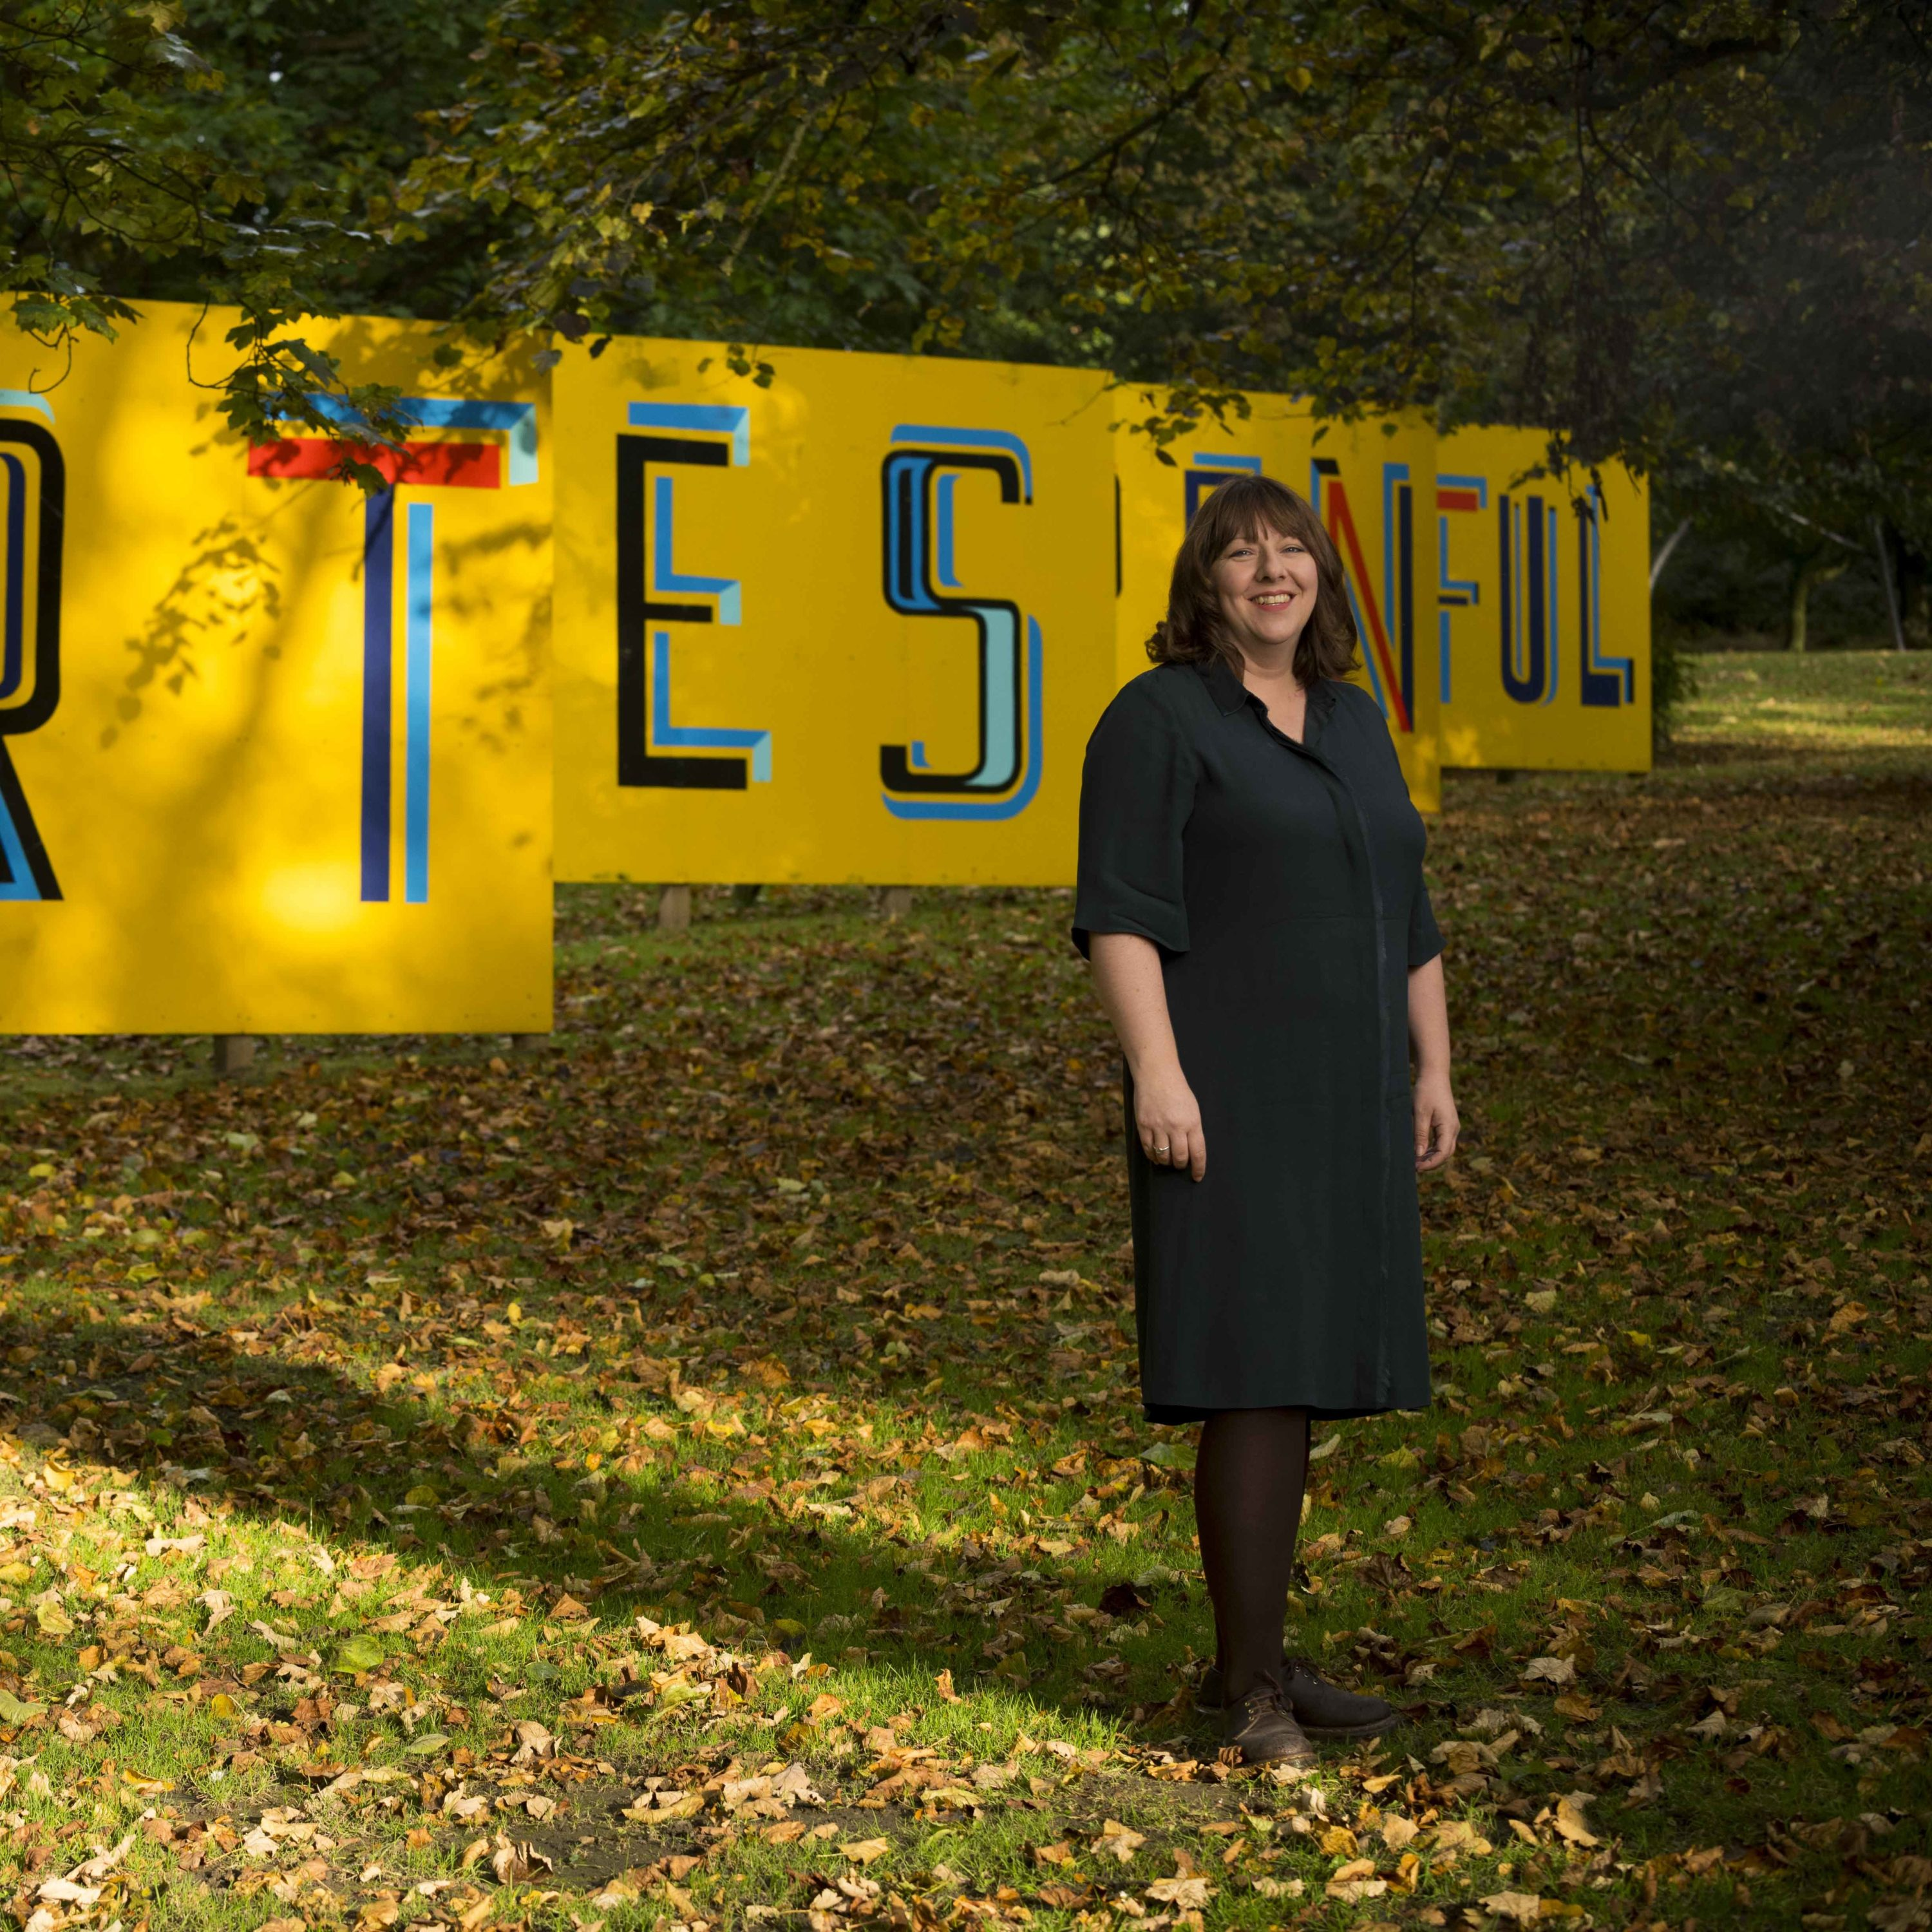 Photograph of Janette Robinson, Head of Learning at Yorkshire Sculpture Park